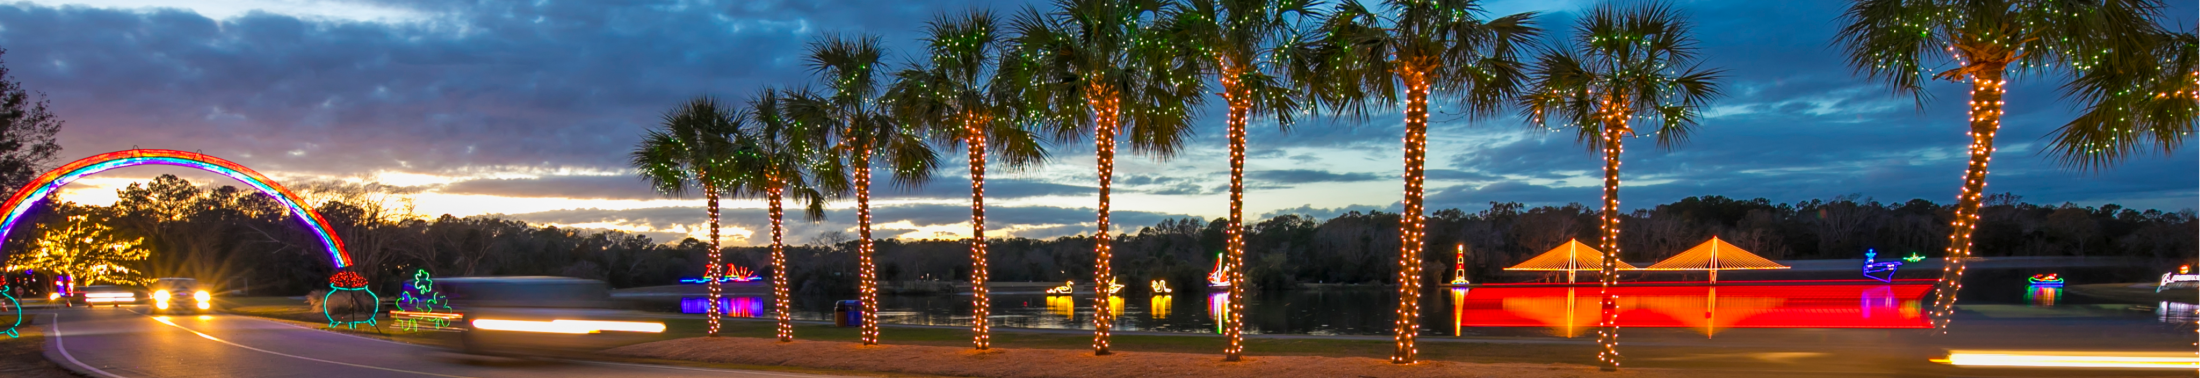 View of a car driving through the Holiday Festival of Lights show at James Island County Park